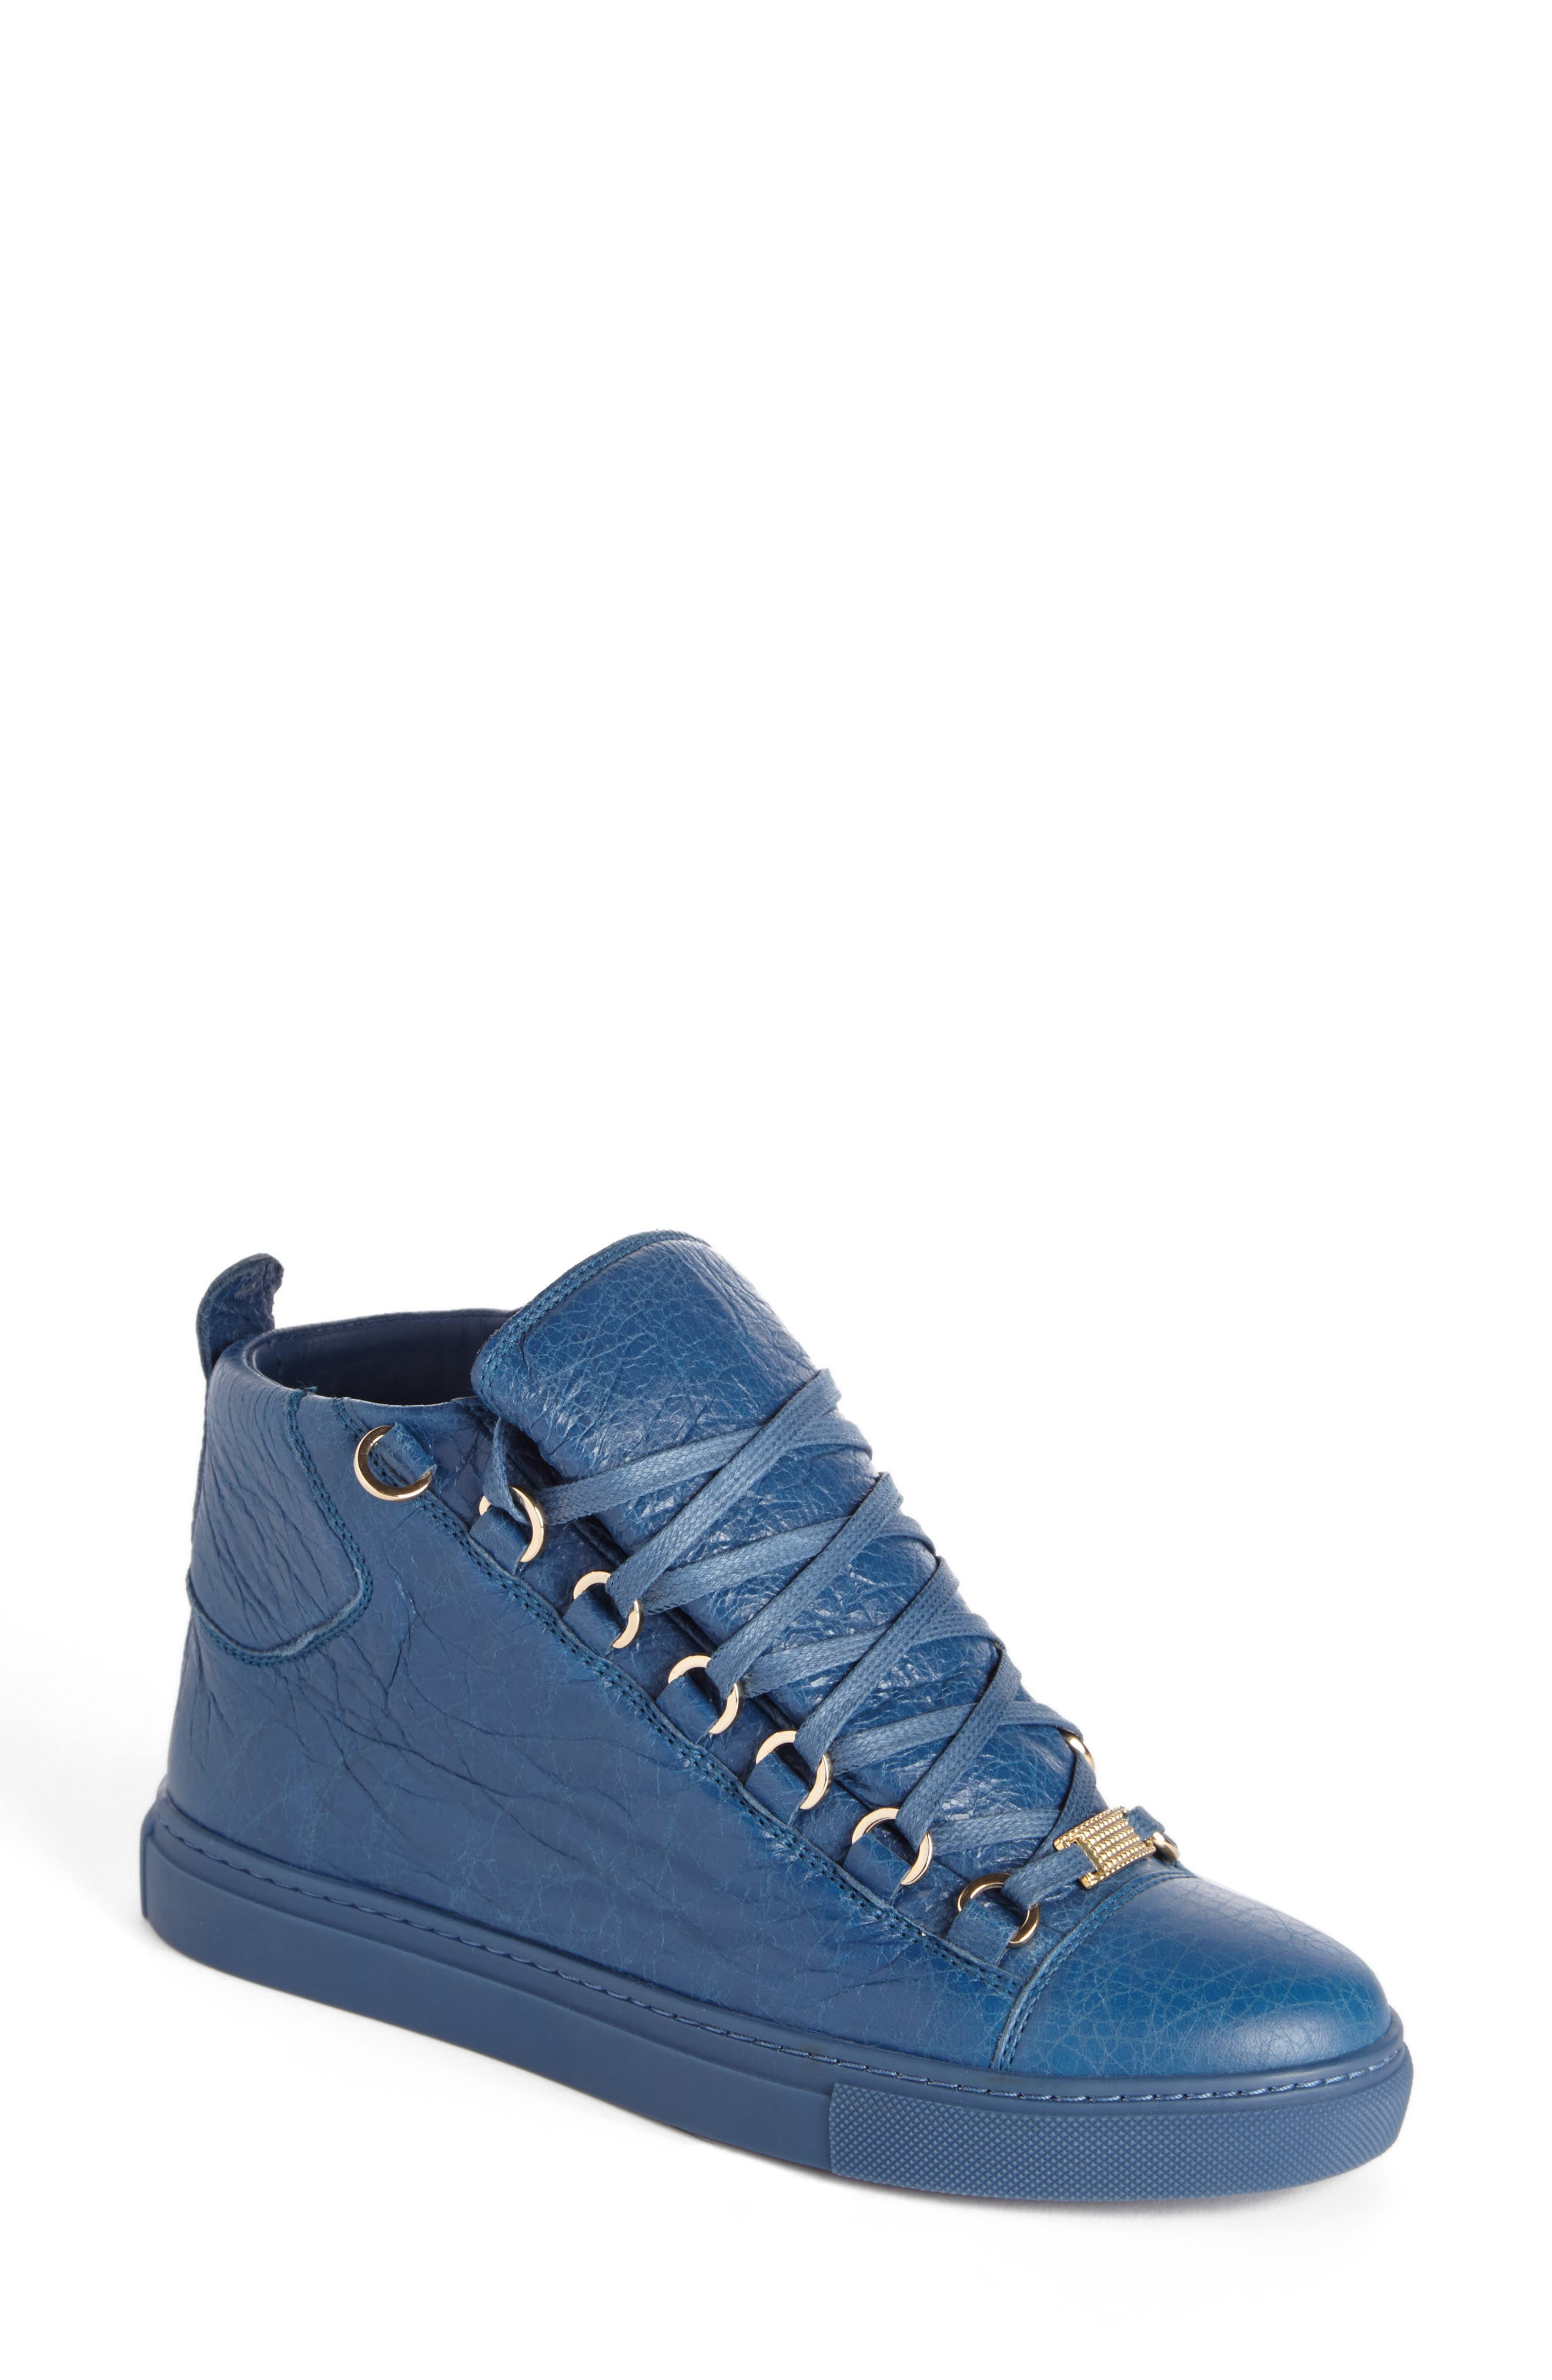 Balenciaga High Top Sneaker (Women)